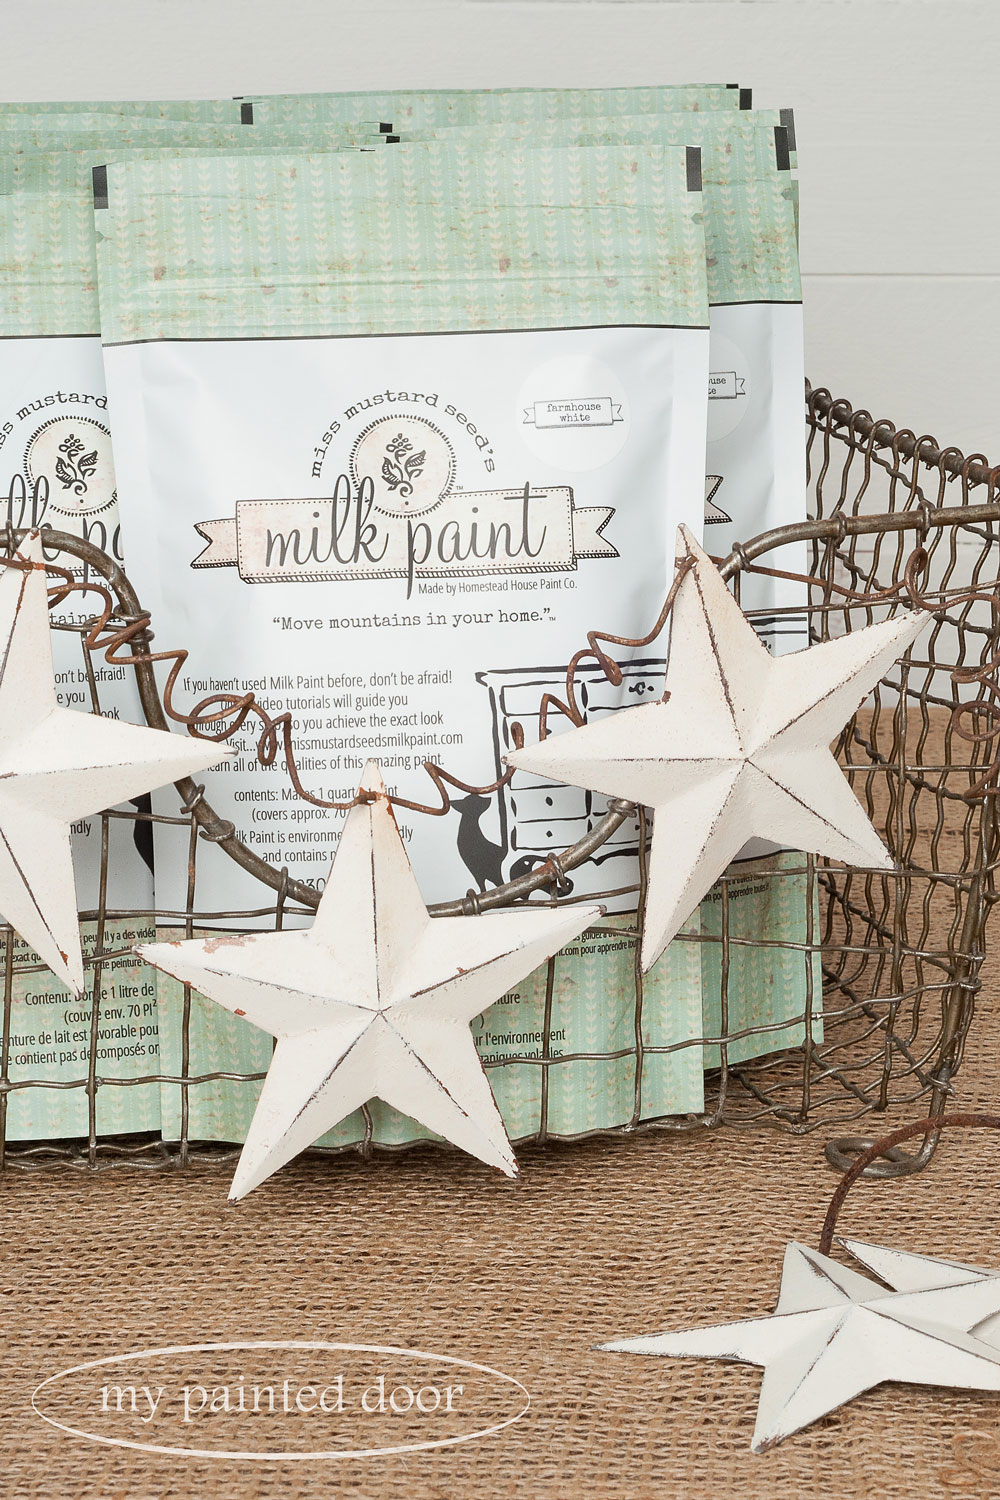 Miss Mustard Seed's Milk Paint in Farmhouse White - available at My Painted Door